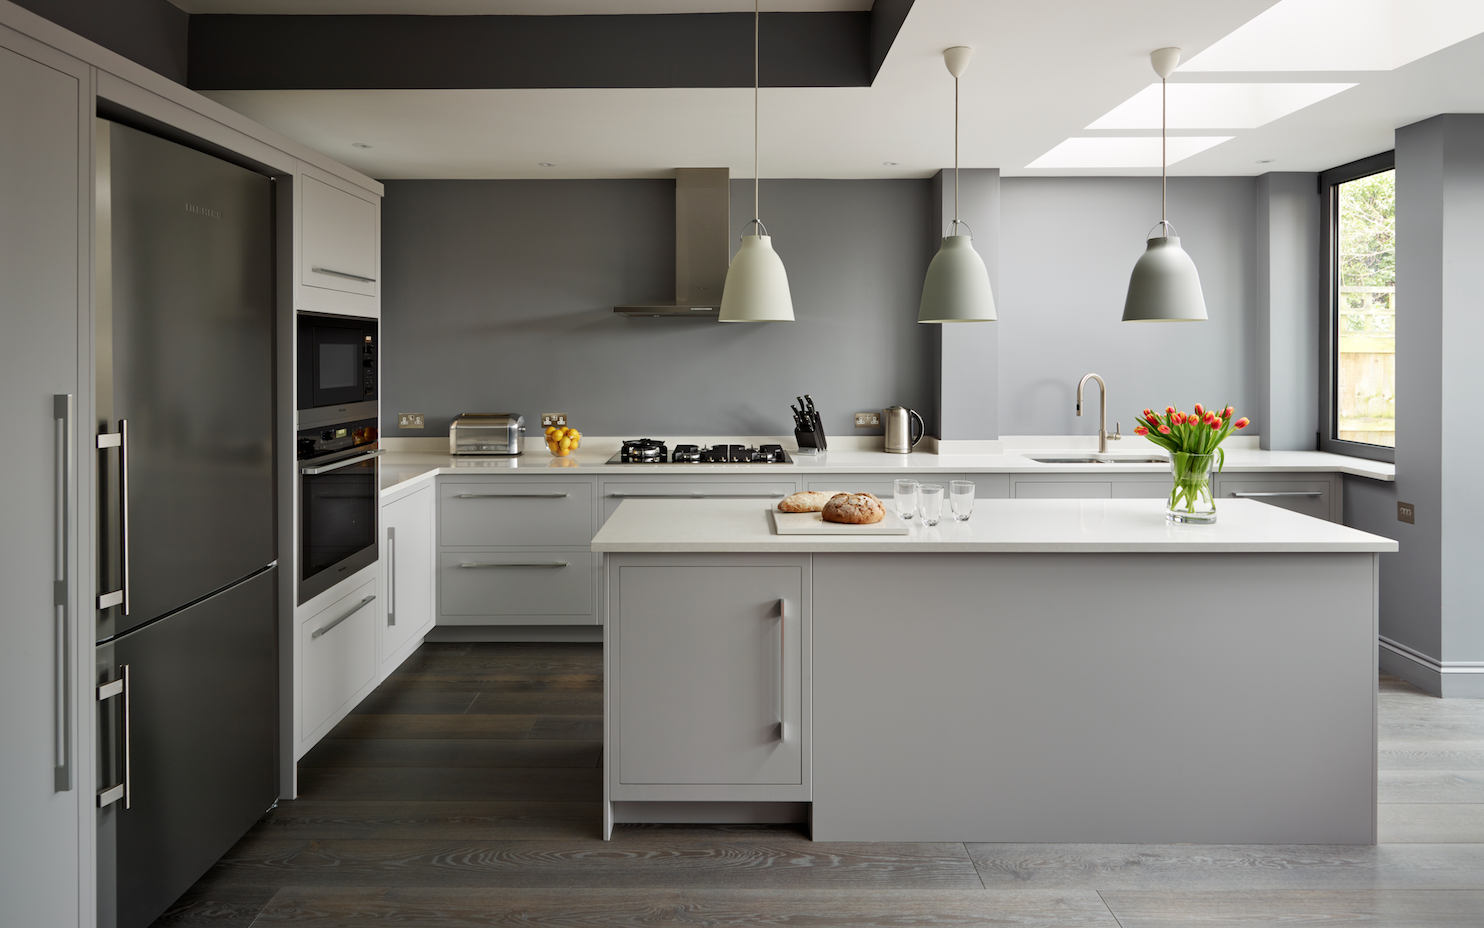 dulux paint for kitchen cabinets harvey jones linear kitchen painted in dulux steel grey 8843